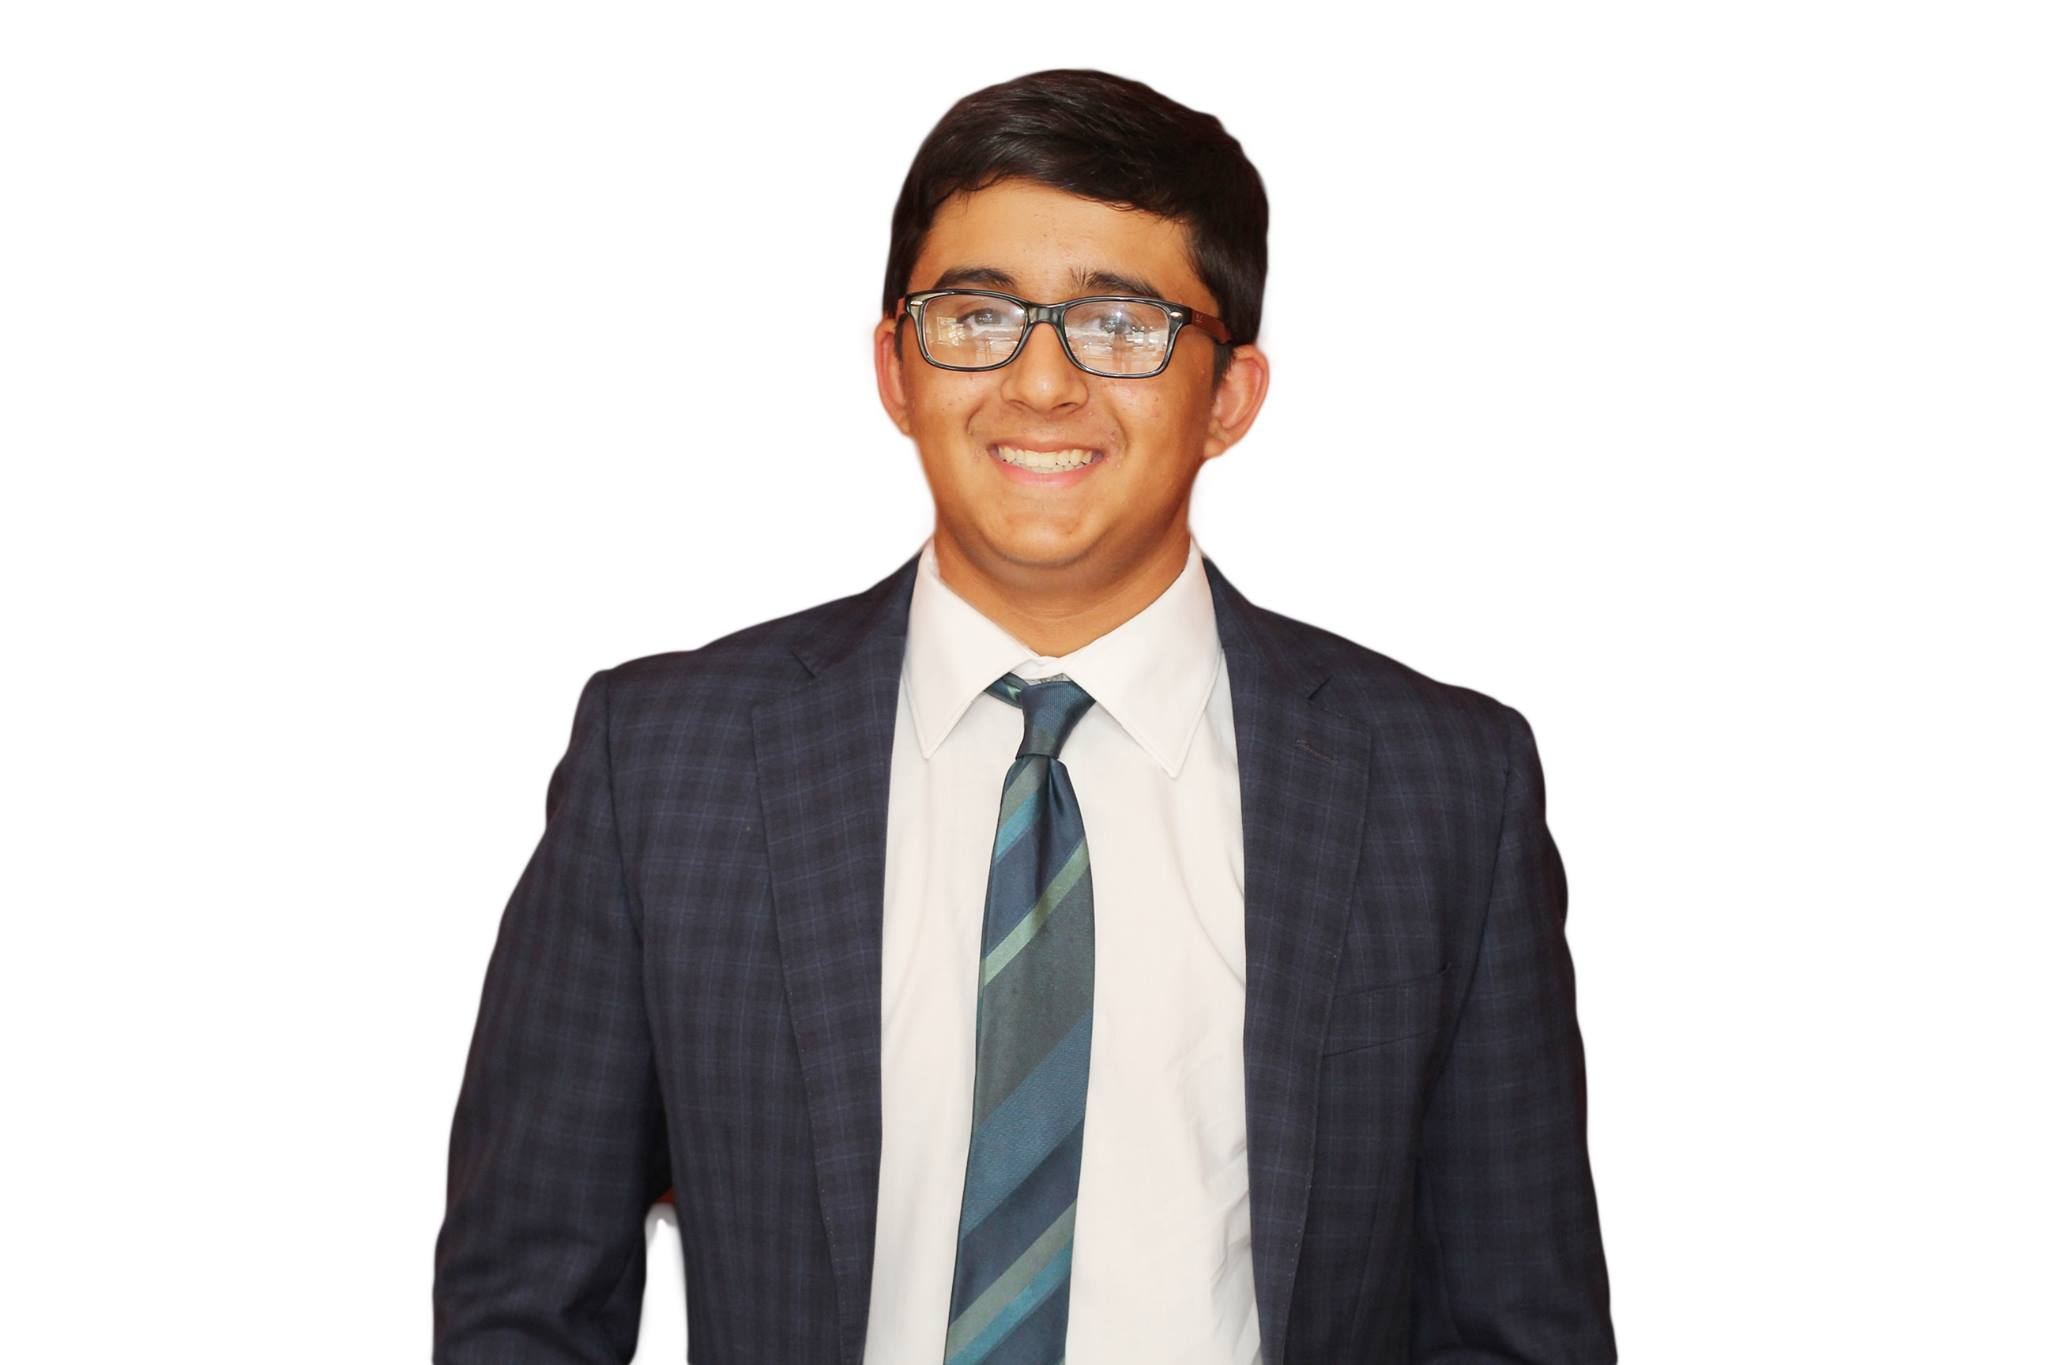 Youth Commission student chosen for national leadership position